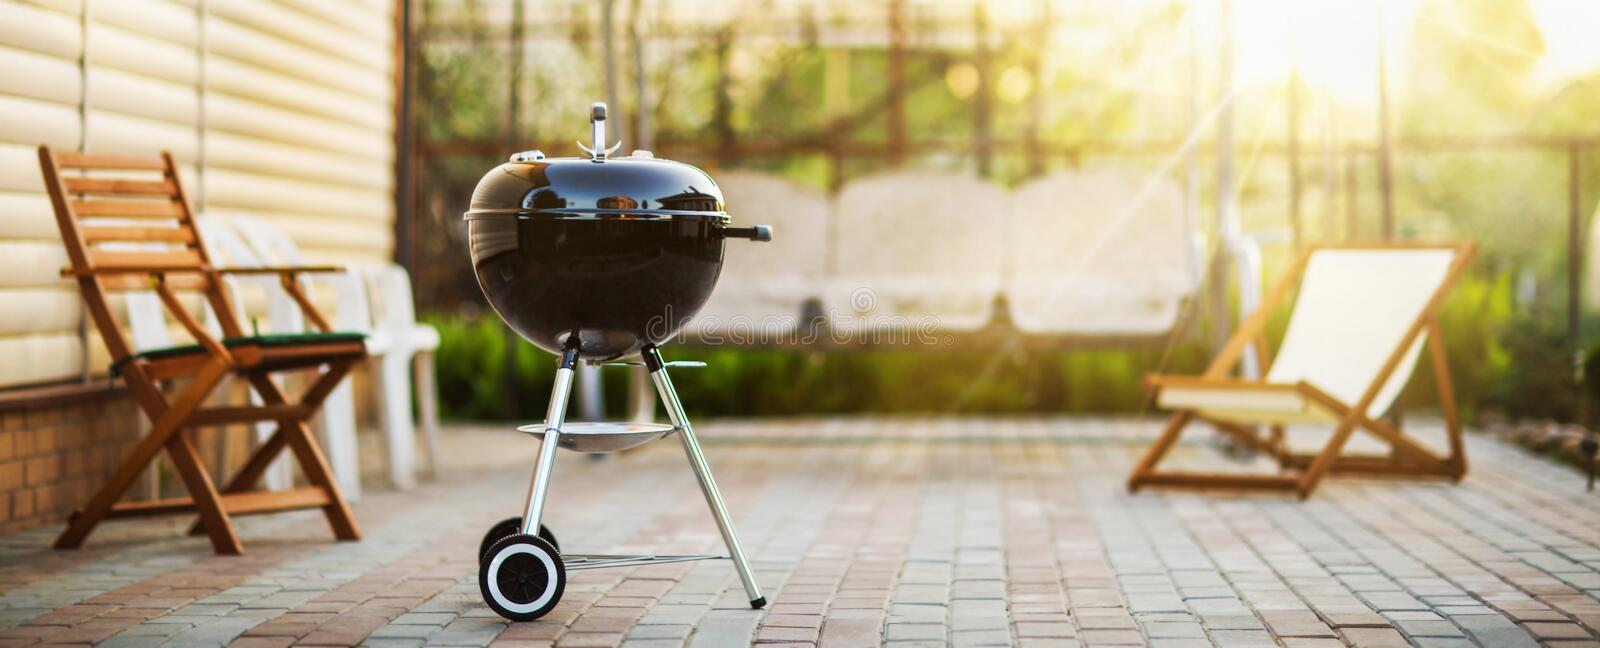 Barbecue Grill in the Open Air. Summer Holidays stock photos